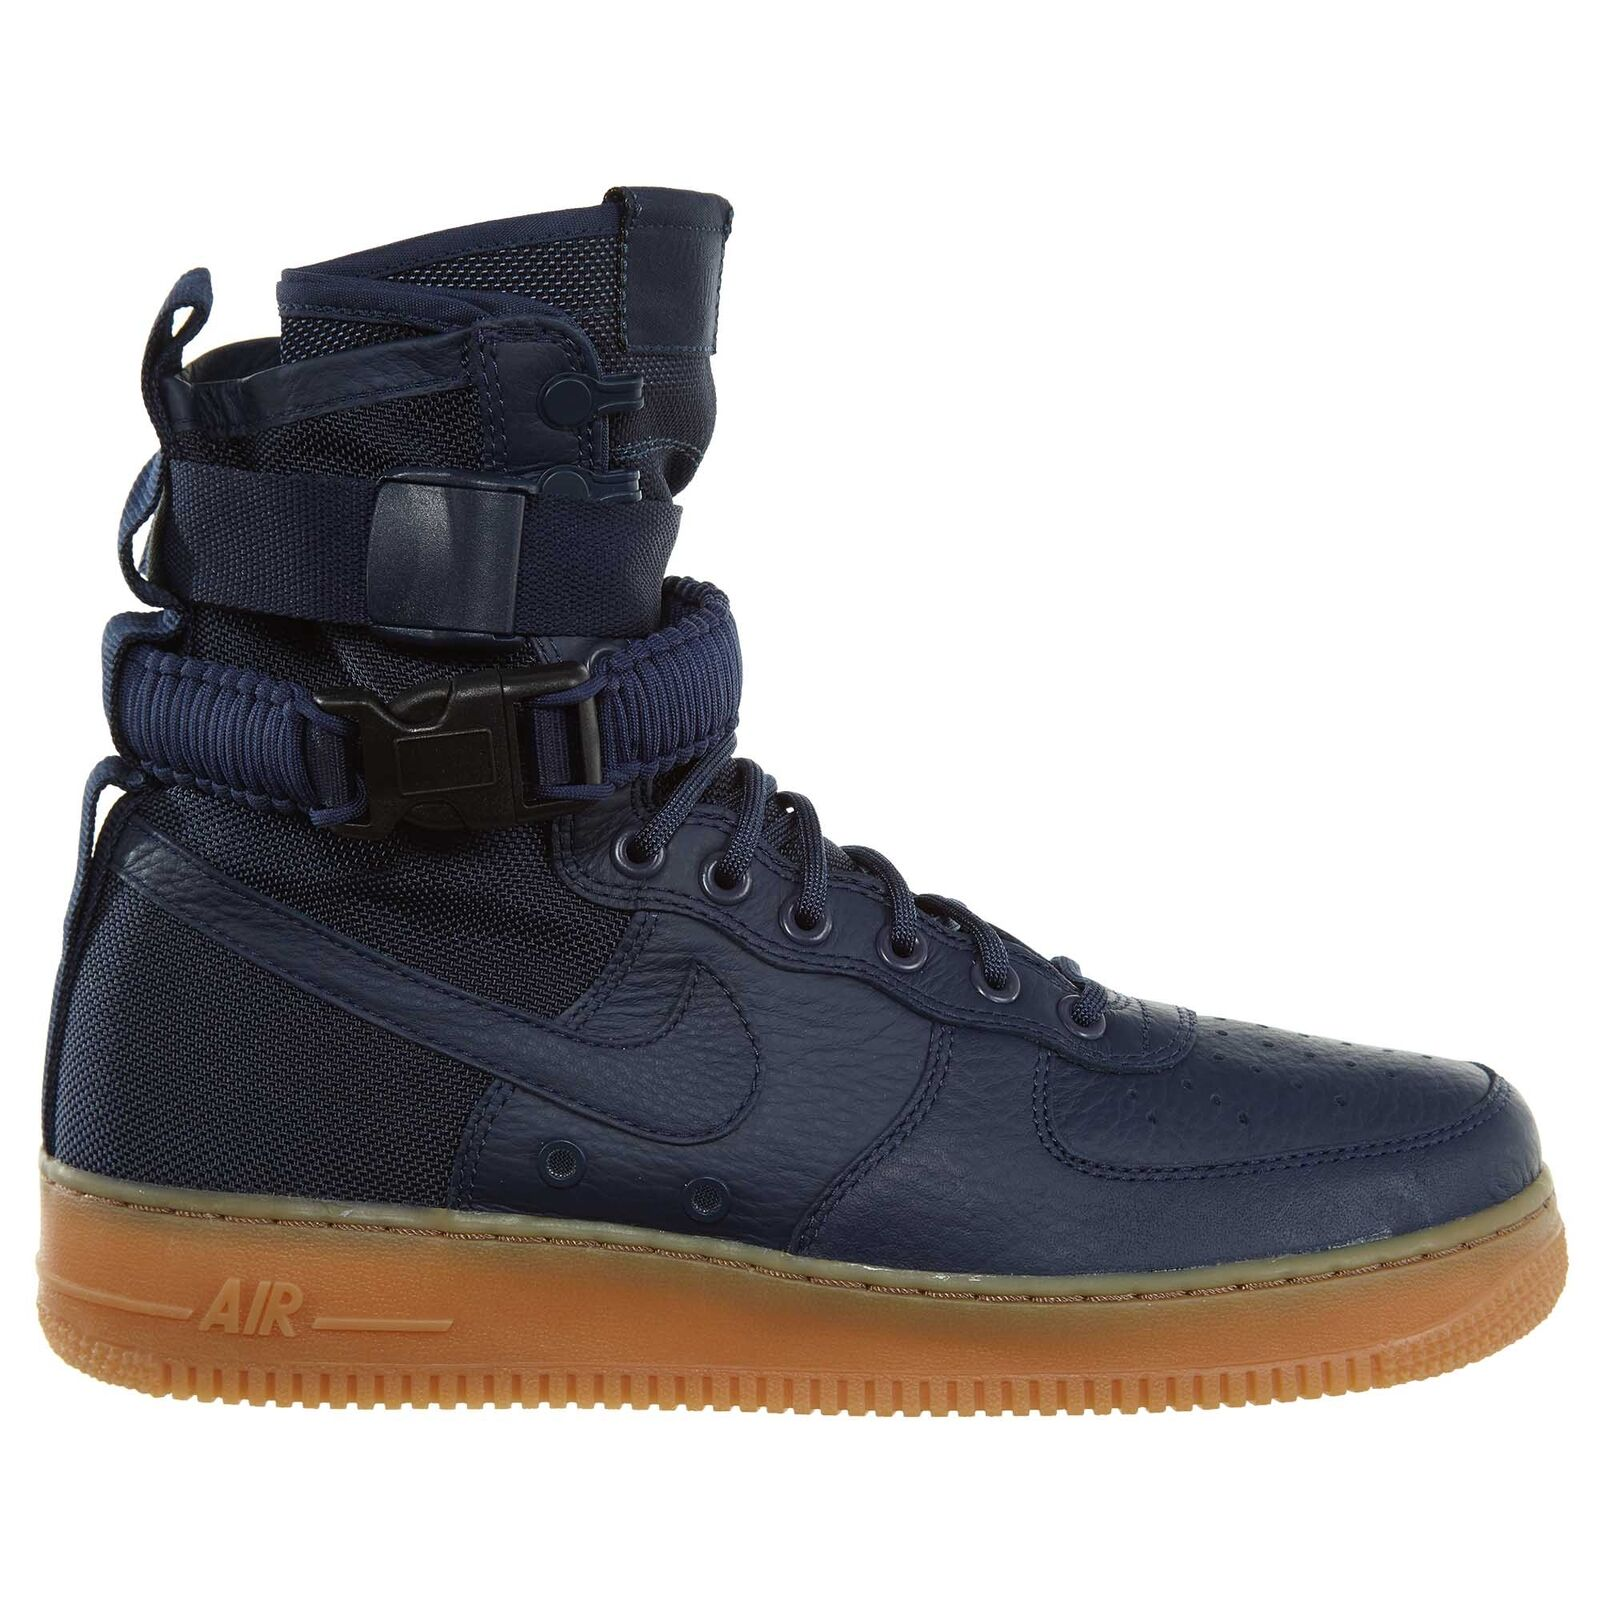 Nike SF Air Force 1 Mens 864024-400 Midnight Navy Gum Leather shoes Size 10